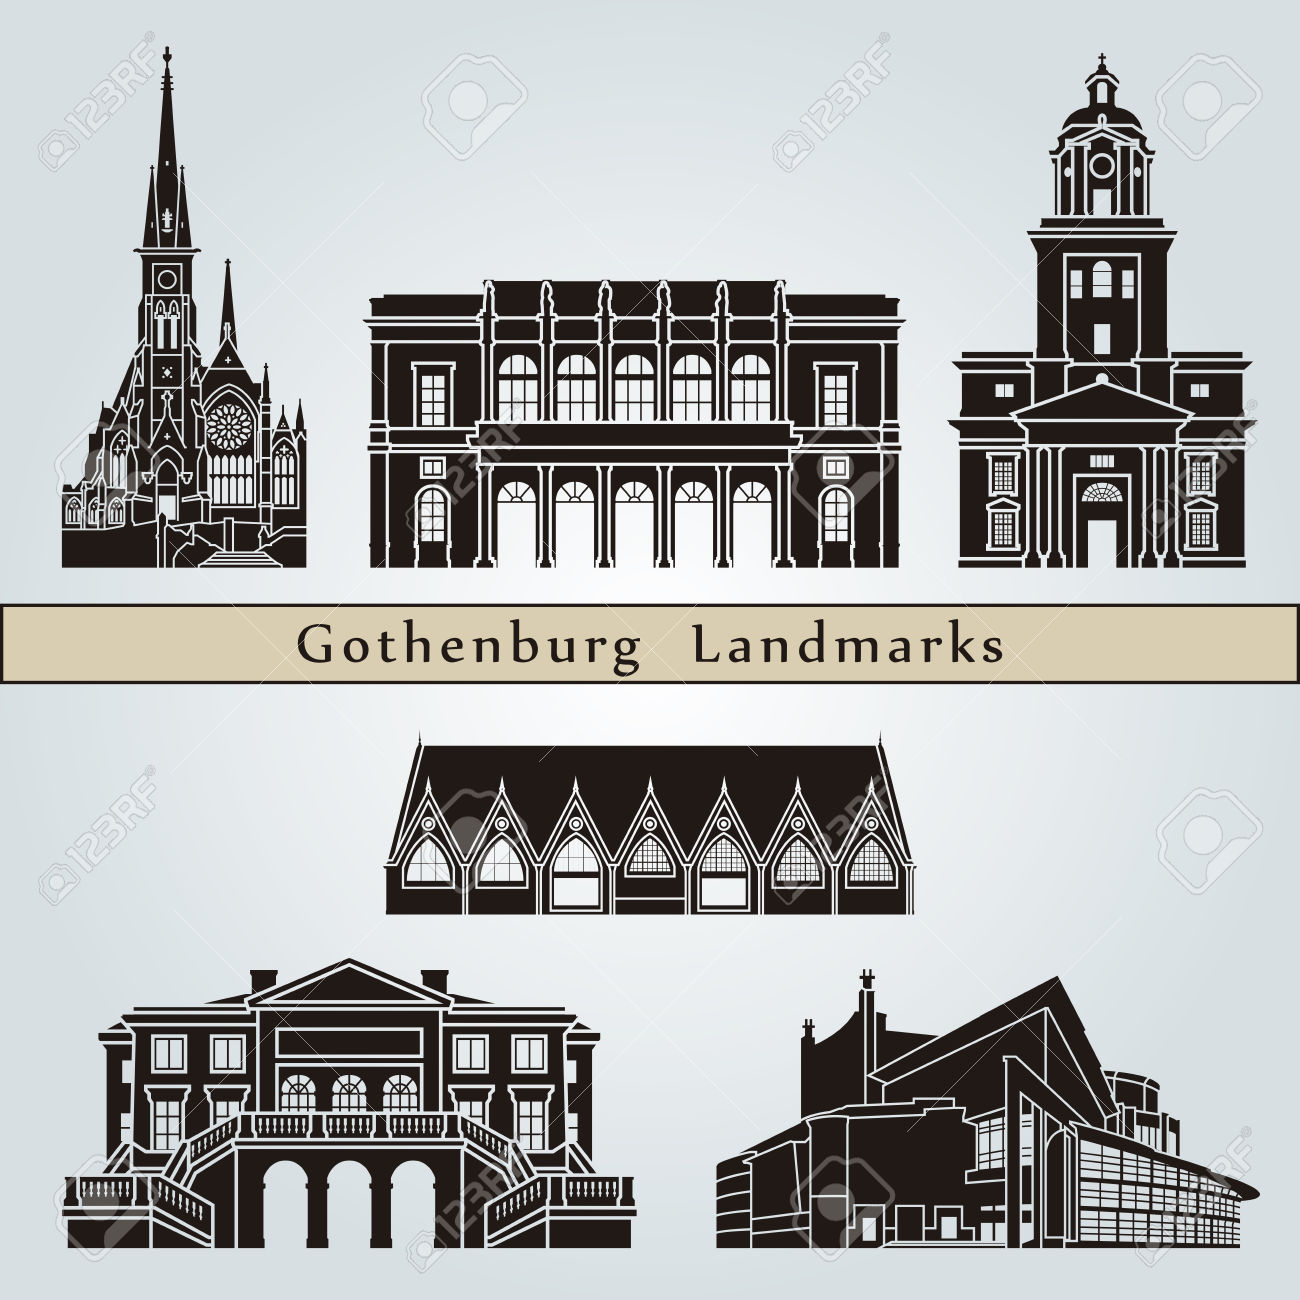 Gothenburg Landmarks And Monuments Isolated On Blue Background.